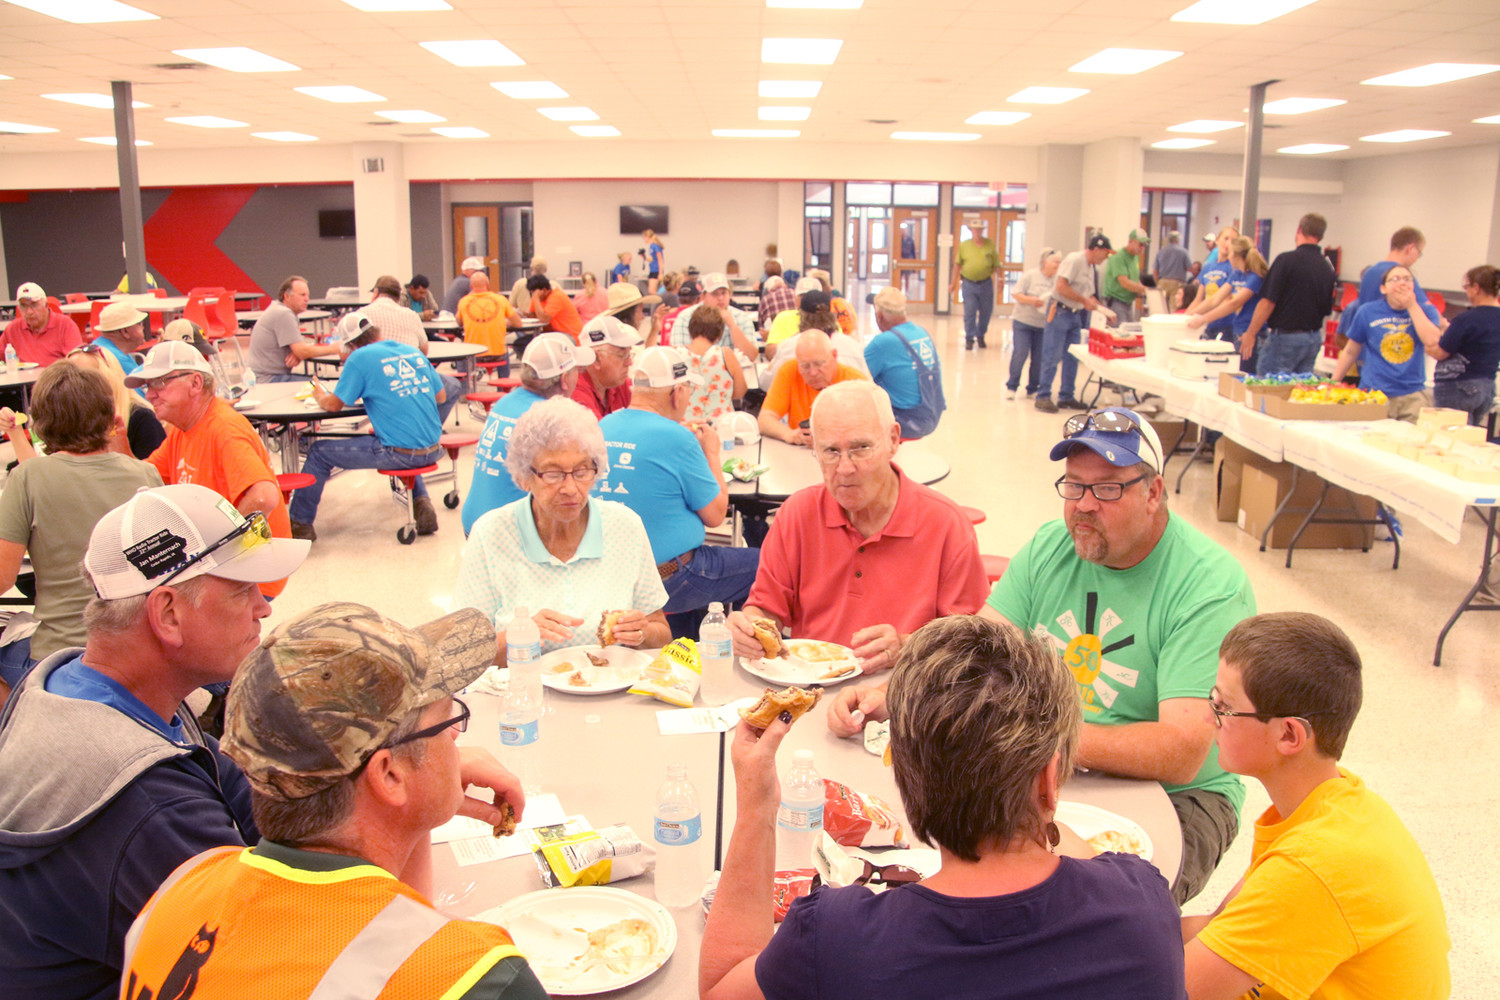 Participants in the 2018 WHO Tractor Ride enjoy rib eyes and a meal served by FFA members and volunteers, Monday, June 25.